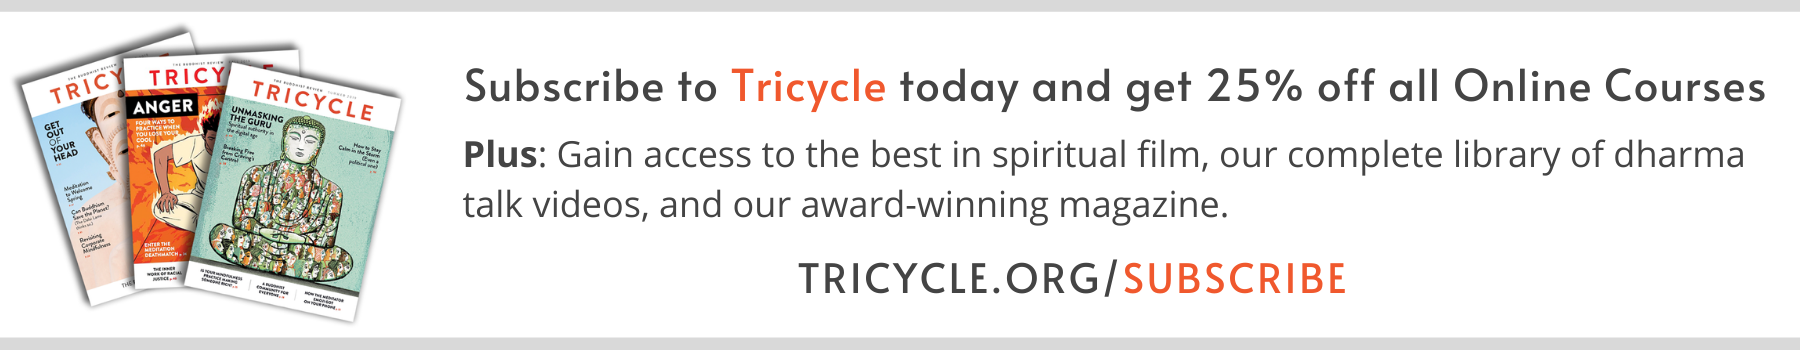 Subscribe to Tricycle today and get 25% off all Online Courses, plus: gain access to the best in spiritual film, our complete library of dharma talk videos, and our award-winning magazine. Tricycle.org/subscribe